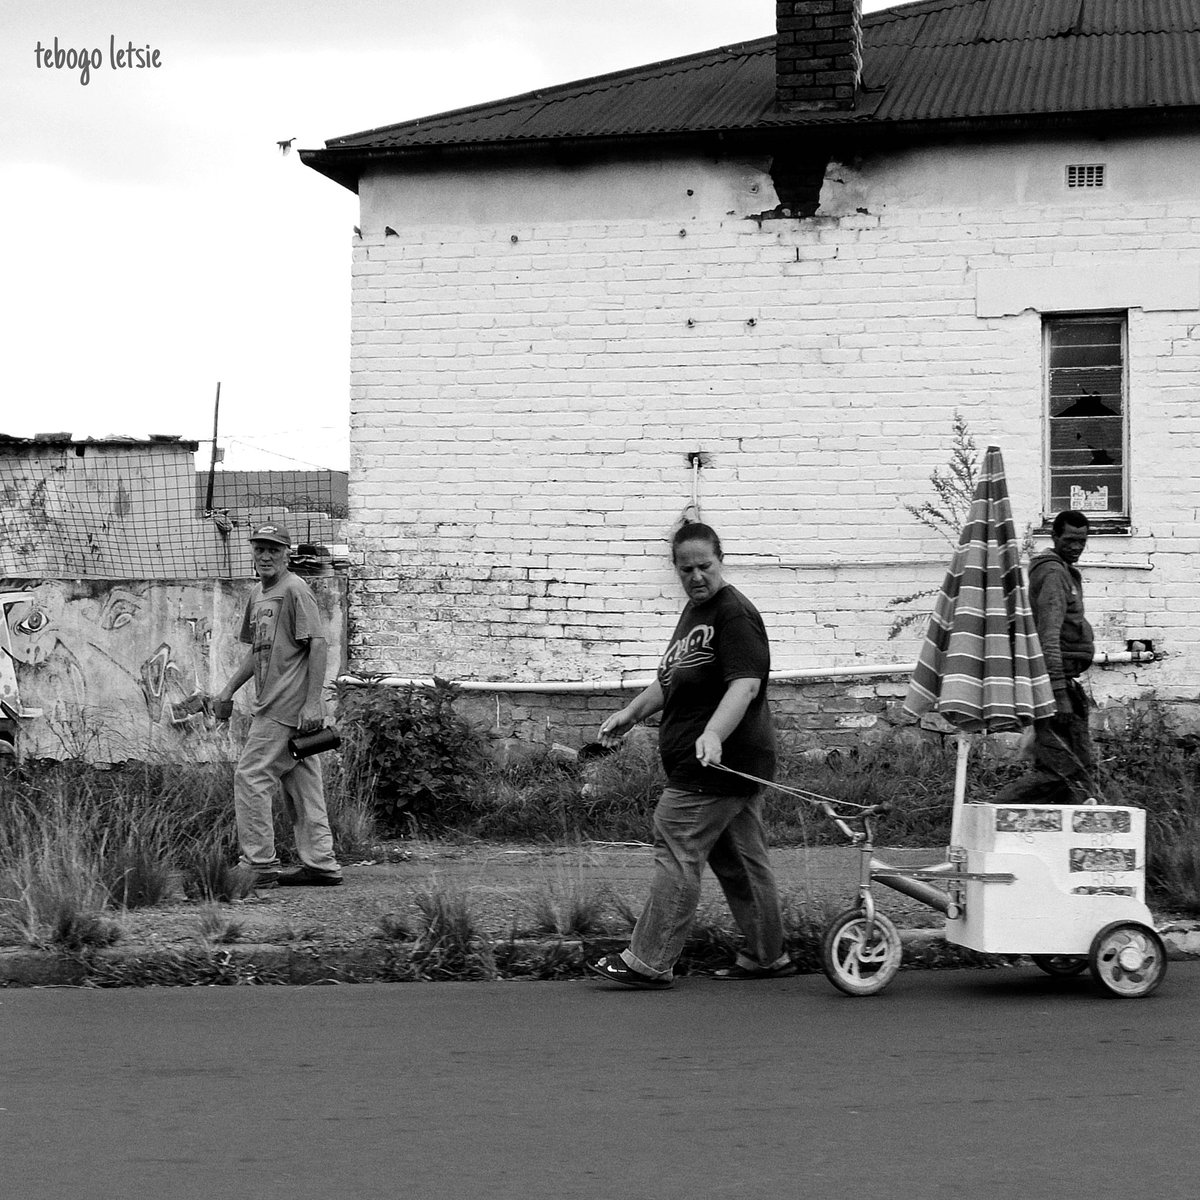 #streetphotography #blacknwhitephotography #photojournalism #southafricapostapartheidpic.twitter.com/p9NV5NC3ND